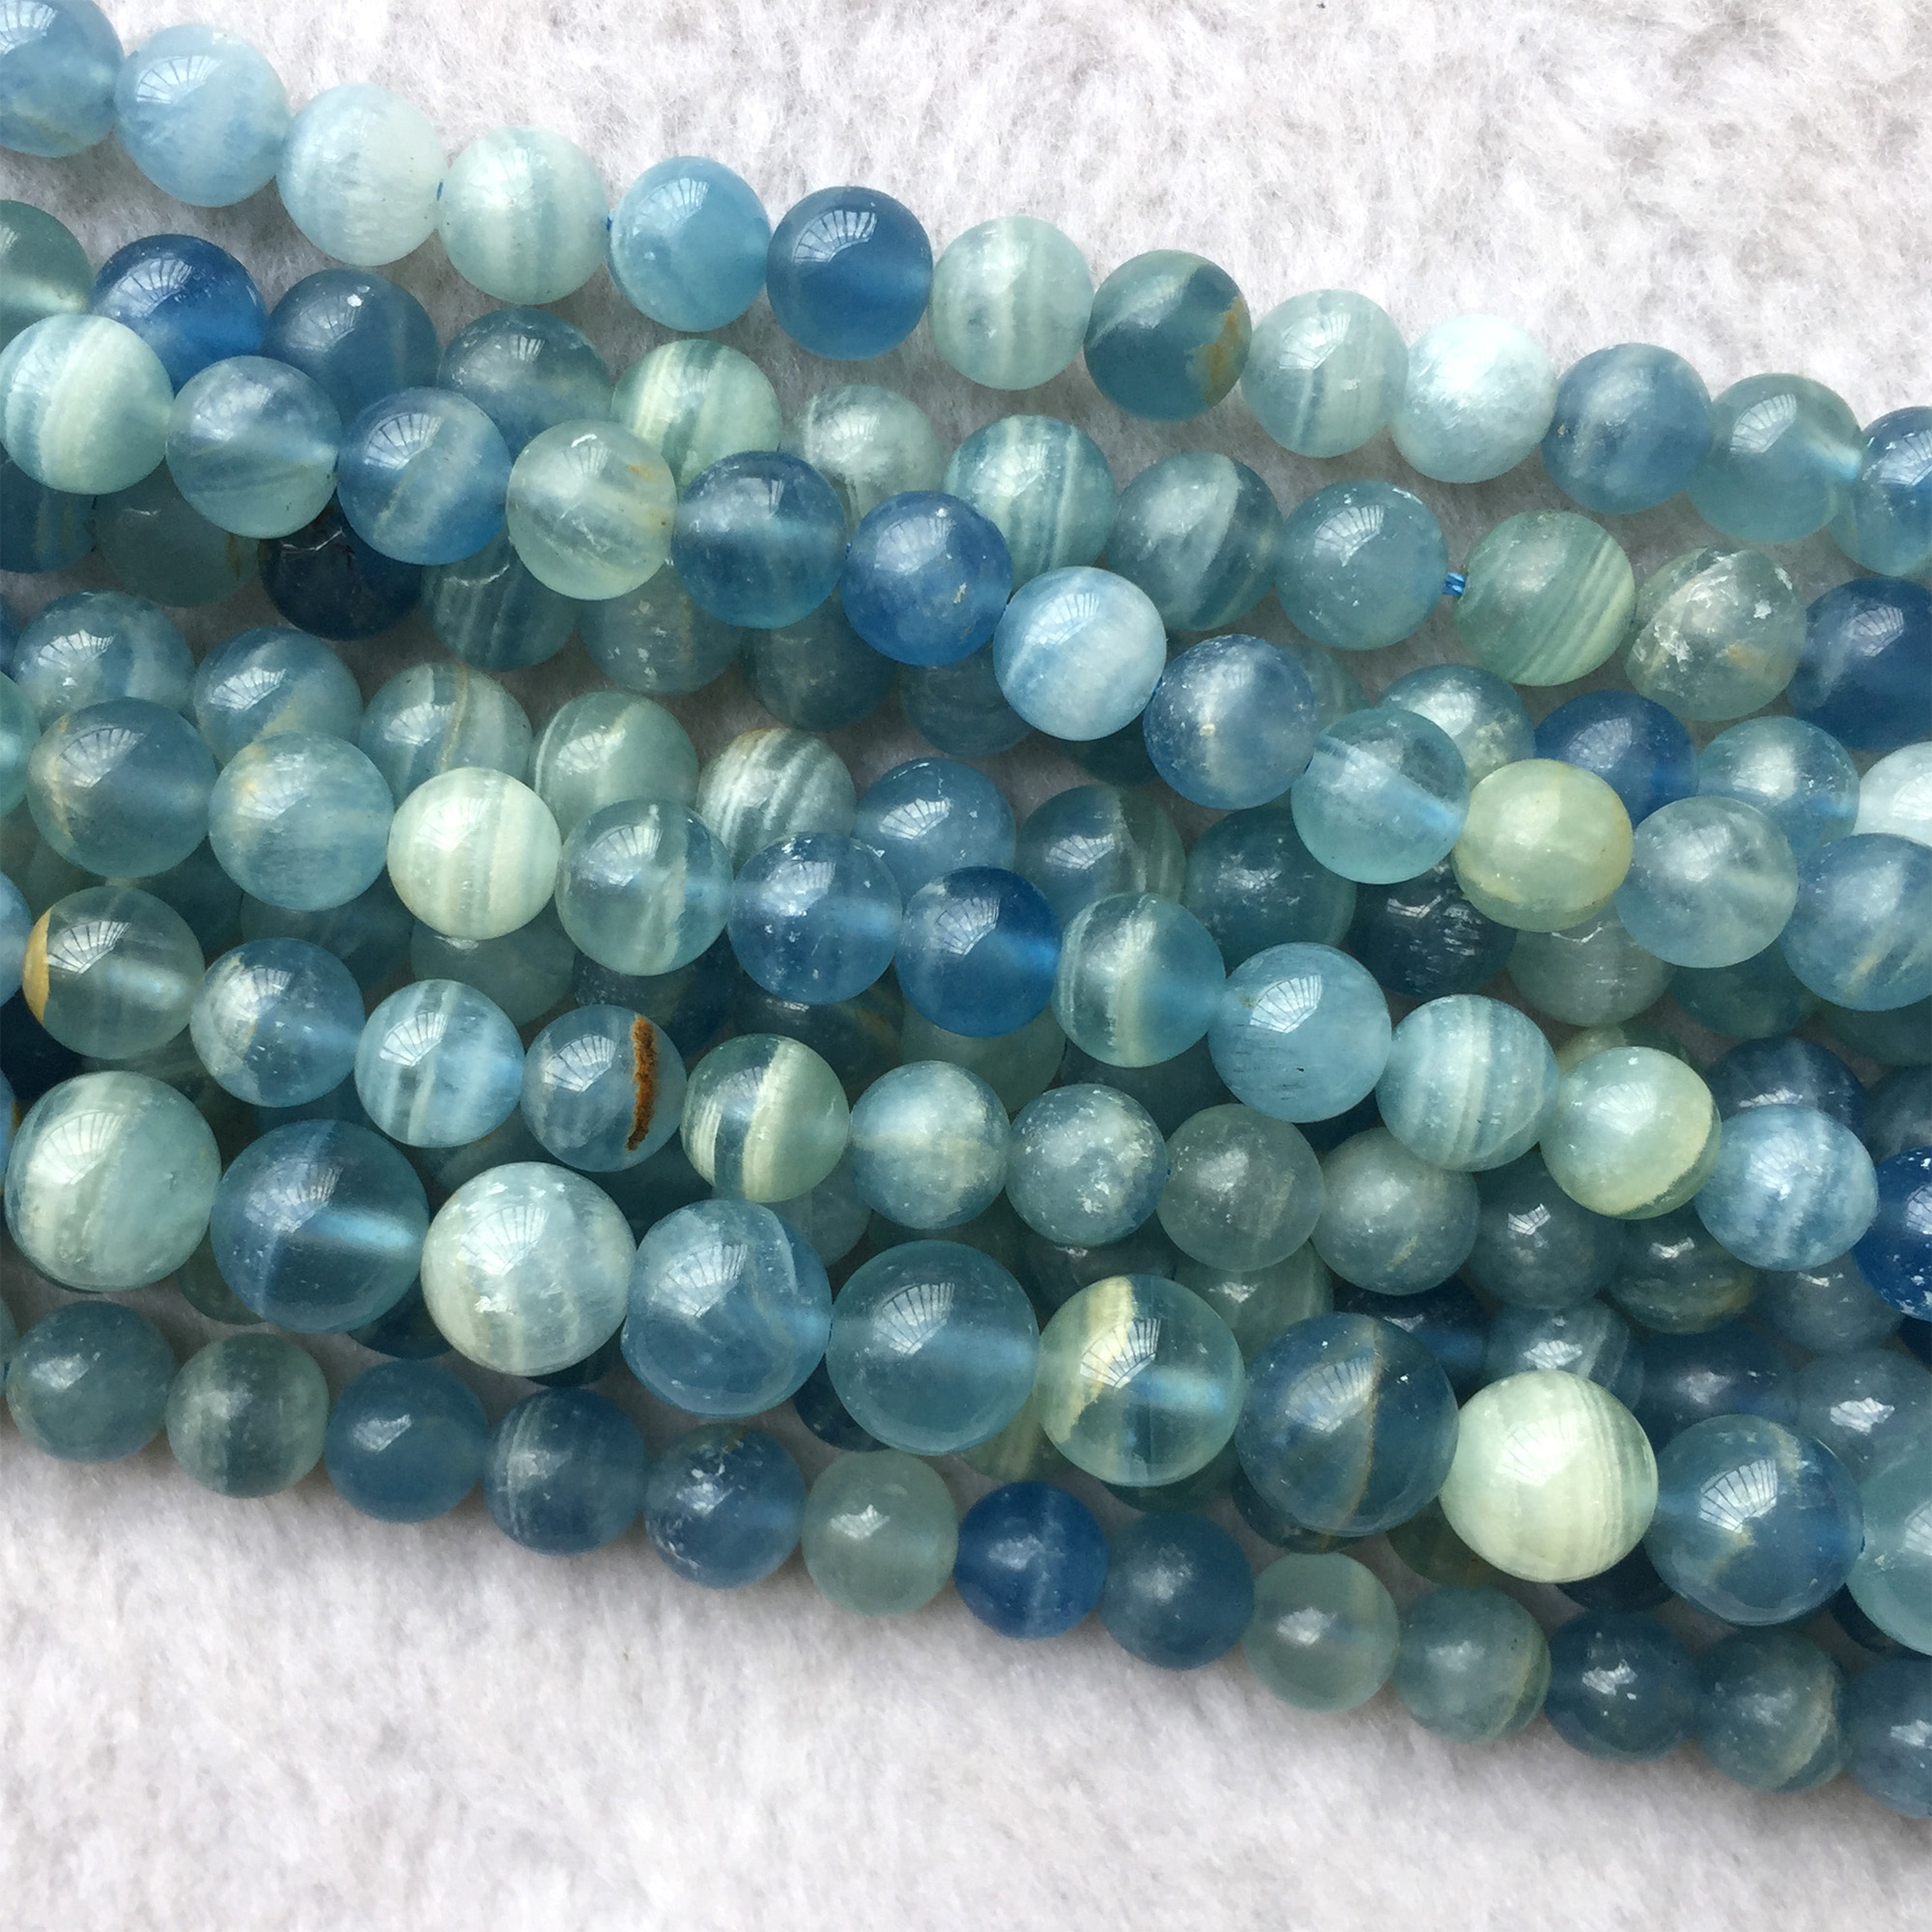 """Natural Genuine Blue Calcite Calcspar Round Jewellery Loose Necklaces or Bracelets Beads 15"""" 06076"""